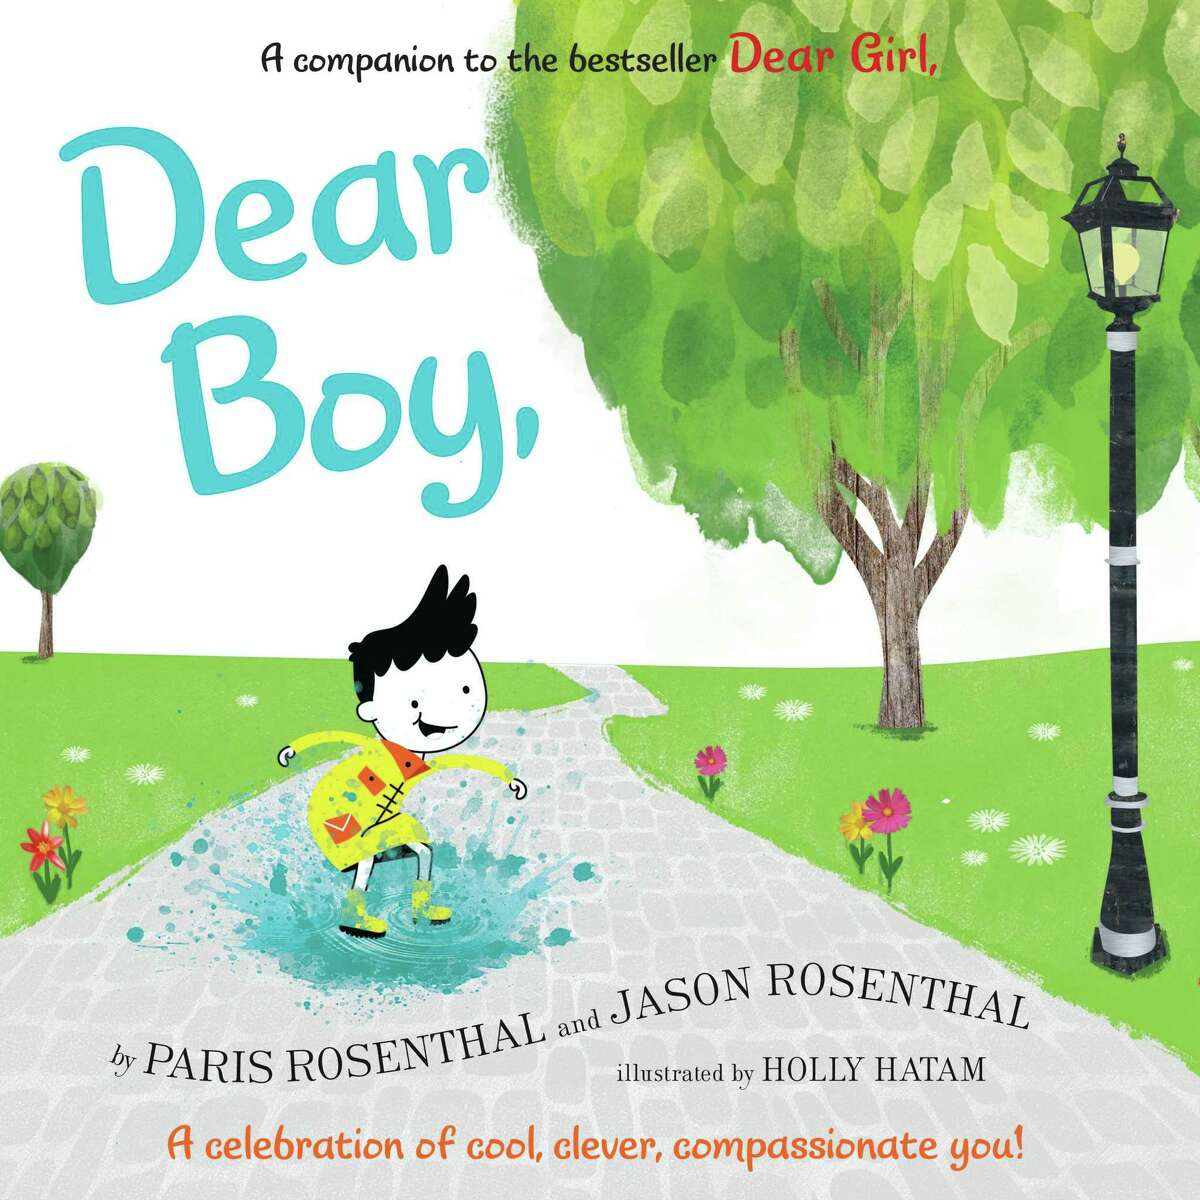 """CHILDREN'S BOOKS: """"Dear Boy"""" By Paris and Jason Rosenthal and illustrated by Holly Hatam, HarperCollins, $17.99, 40 pgs, Ages 4-8"""